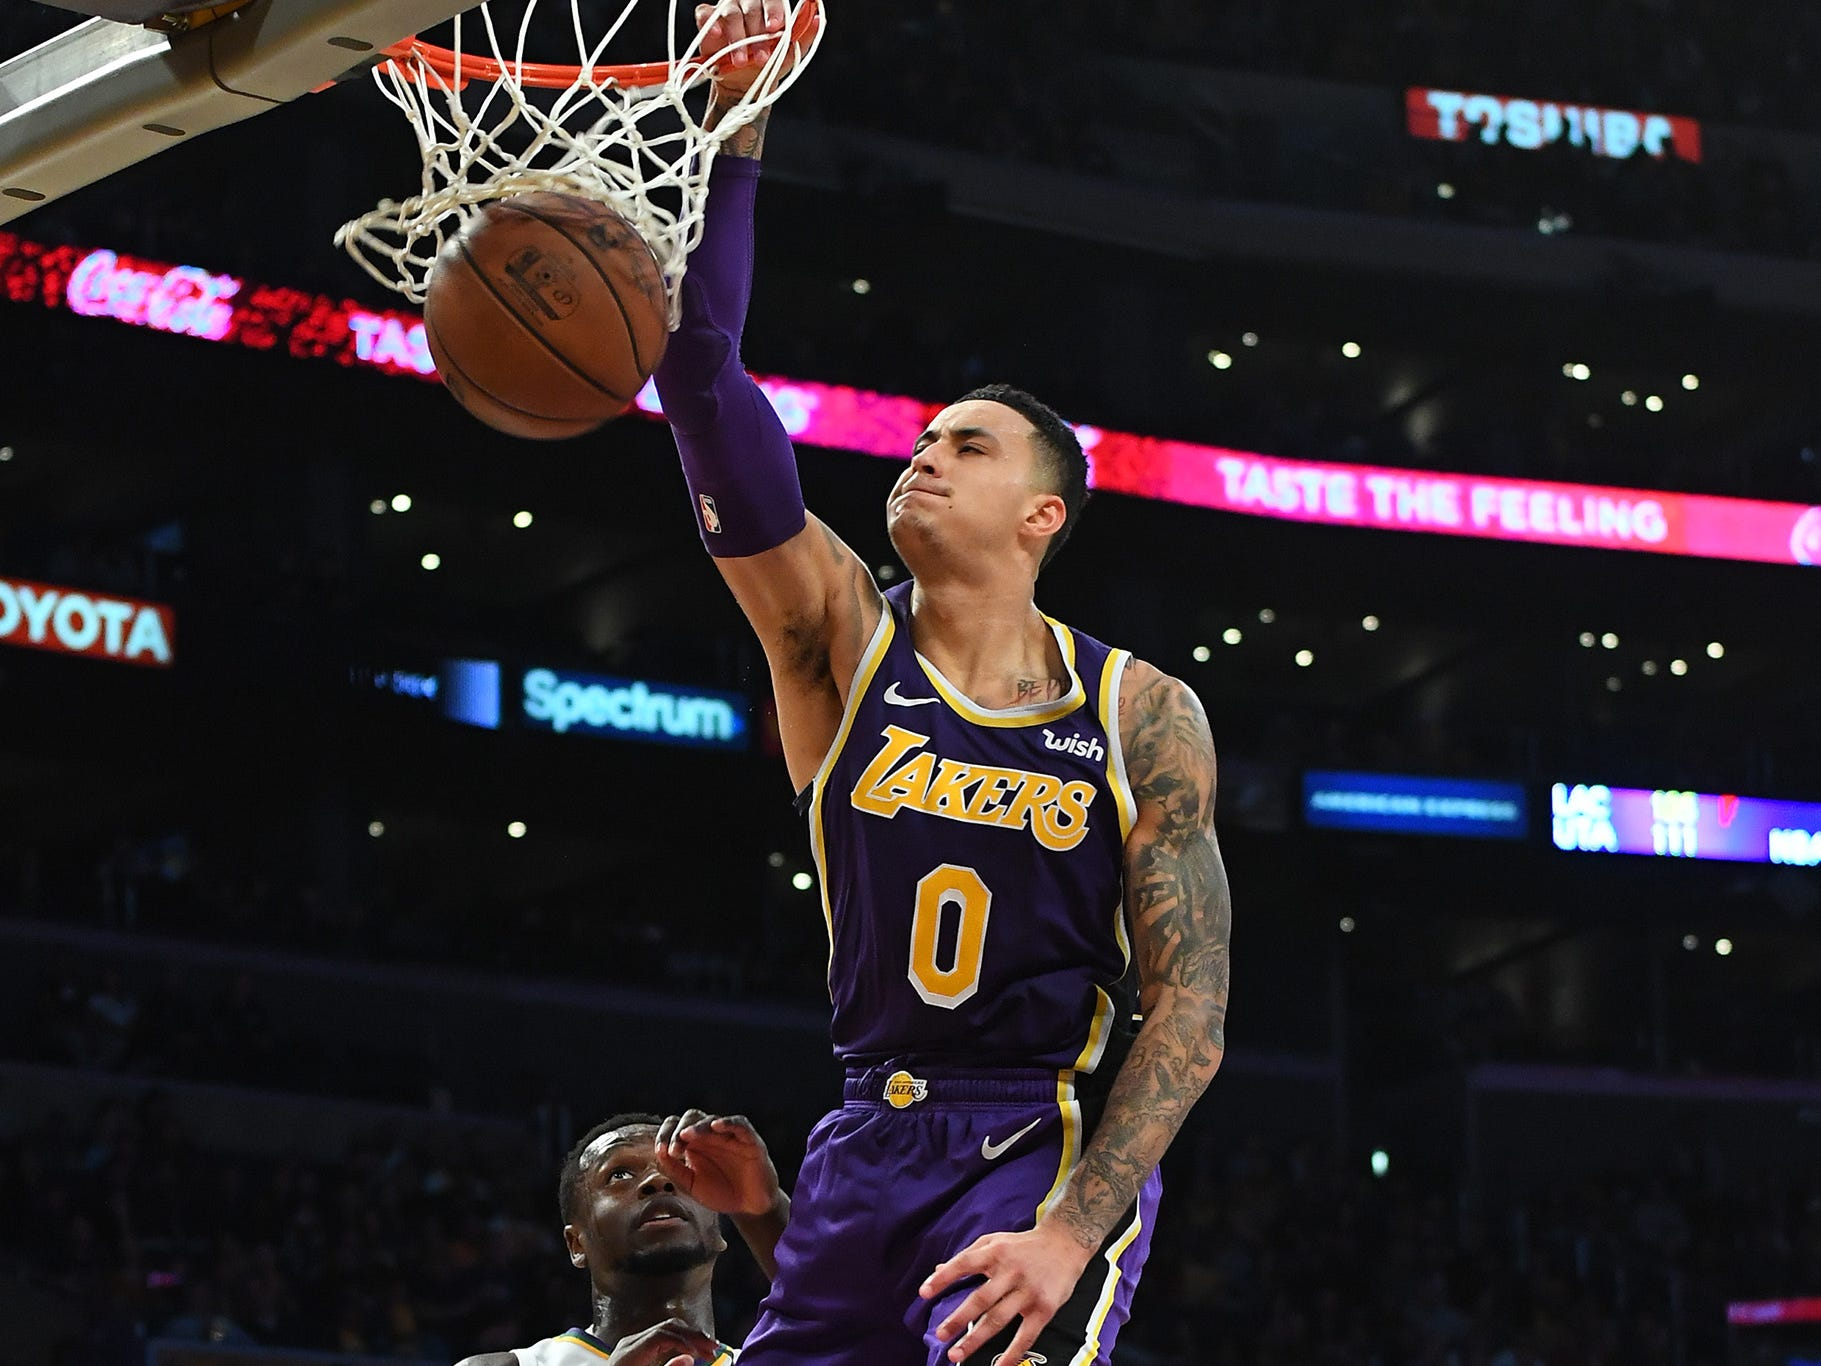 Feb. 27: Lakers forward Kyle Kuzma throws down the thunderous one-handed flush against the Pelicans at Staples Center.